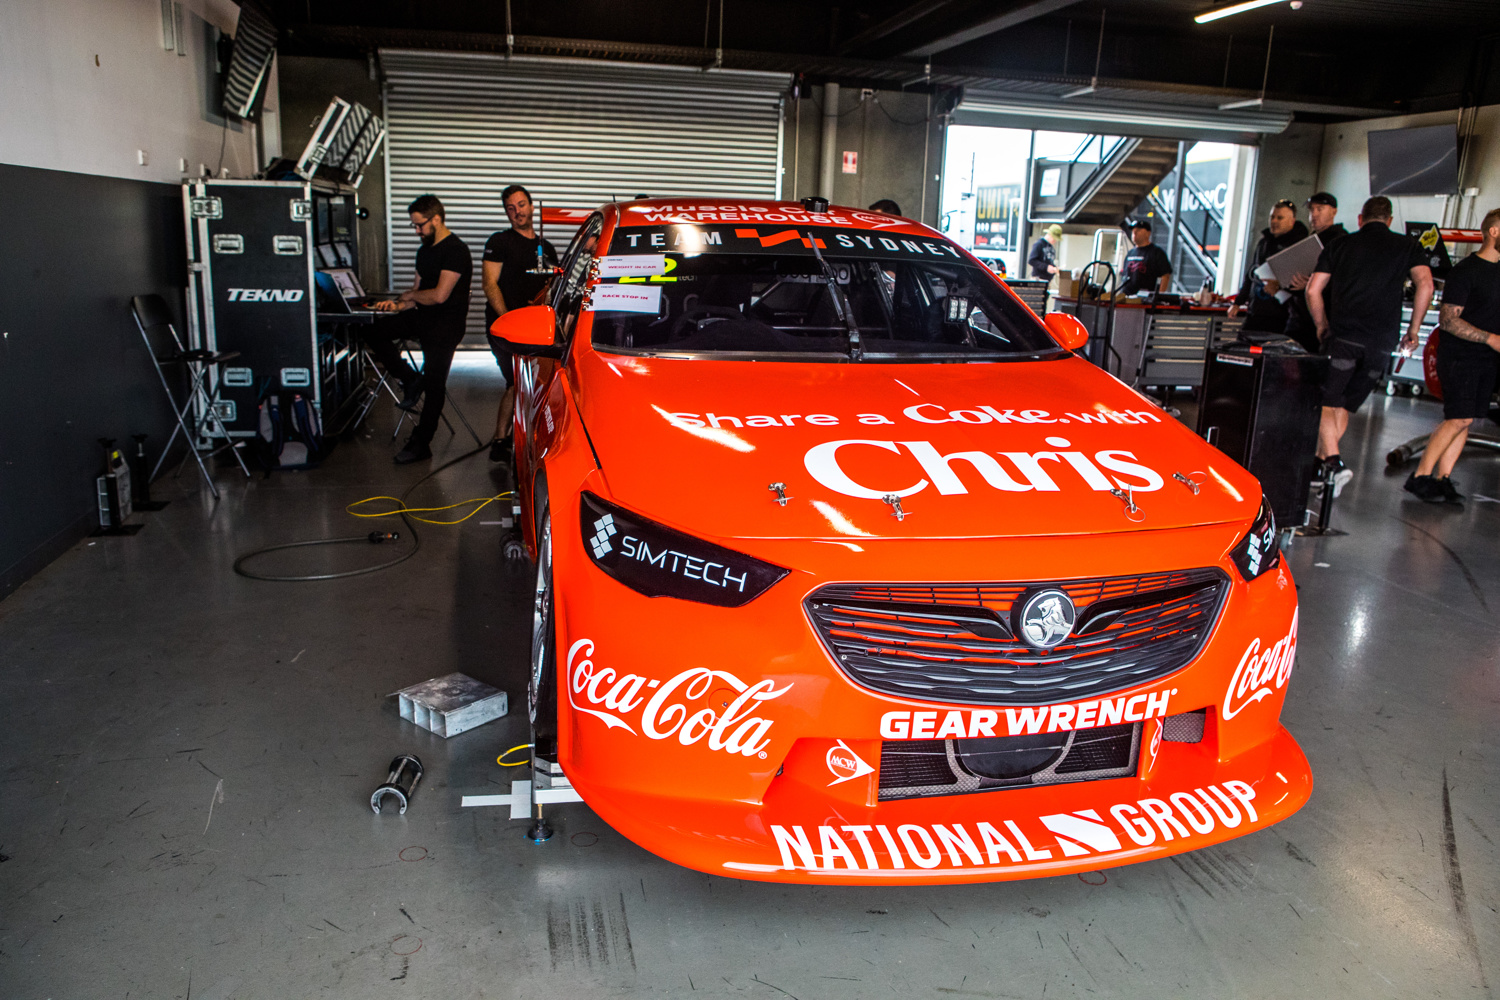 Team Sydney adopts local support for Supercars debut - Speedcafe